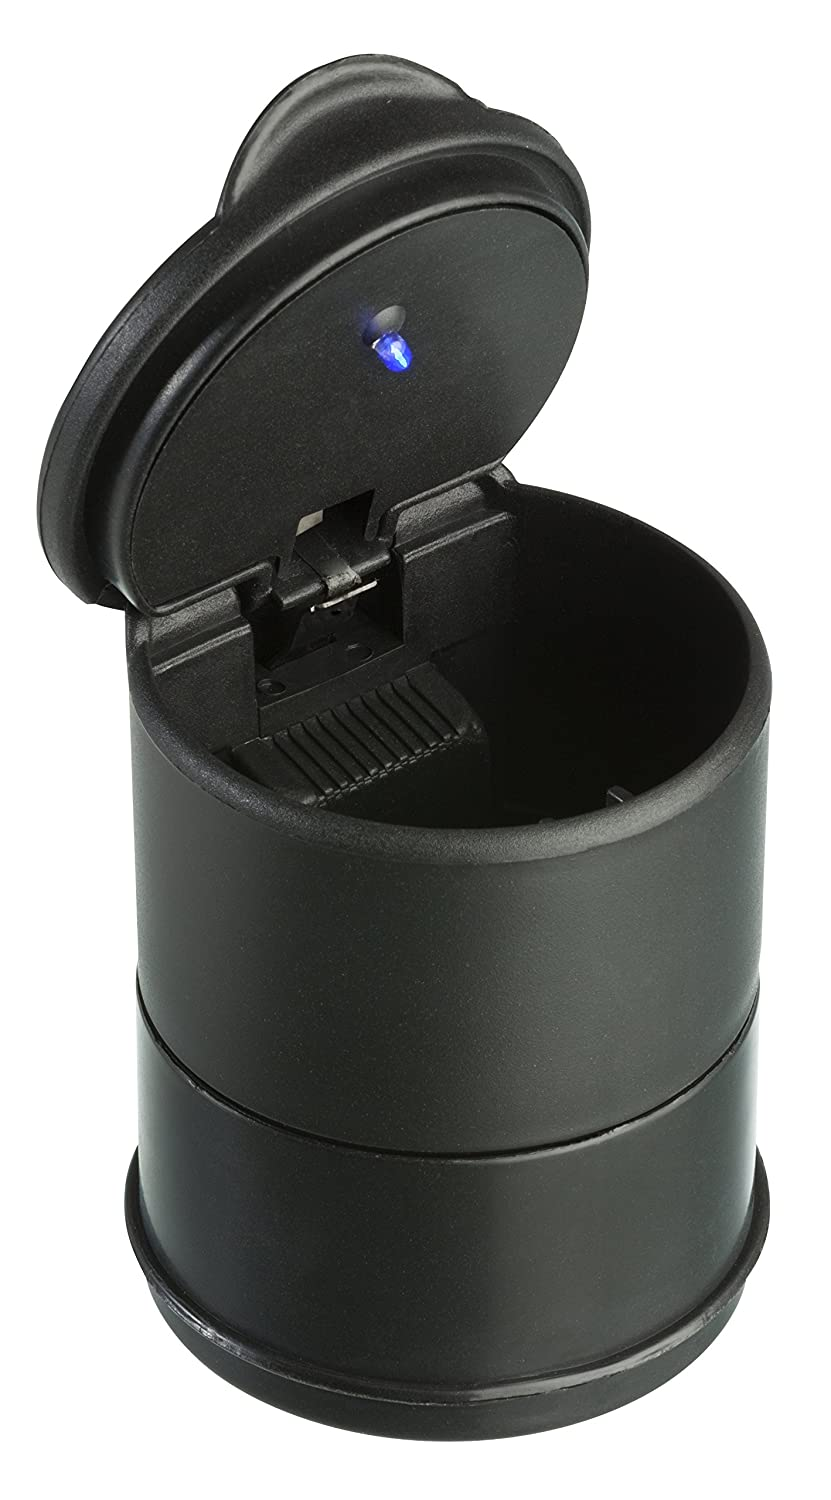 TRIXES Plastic Cup Holder Ash Tray with Lid and LED